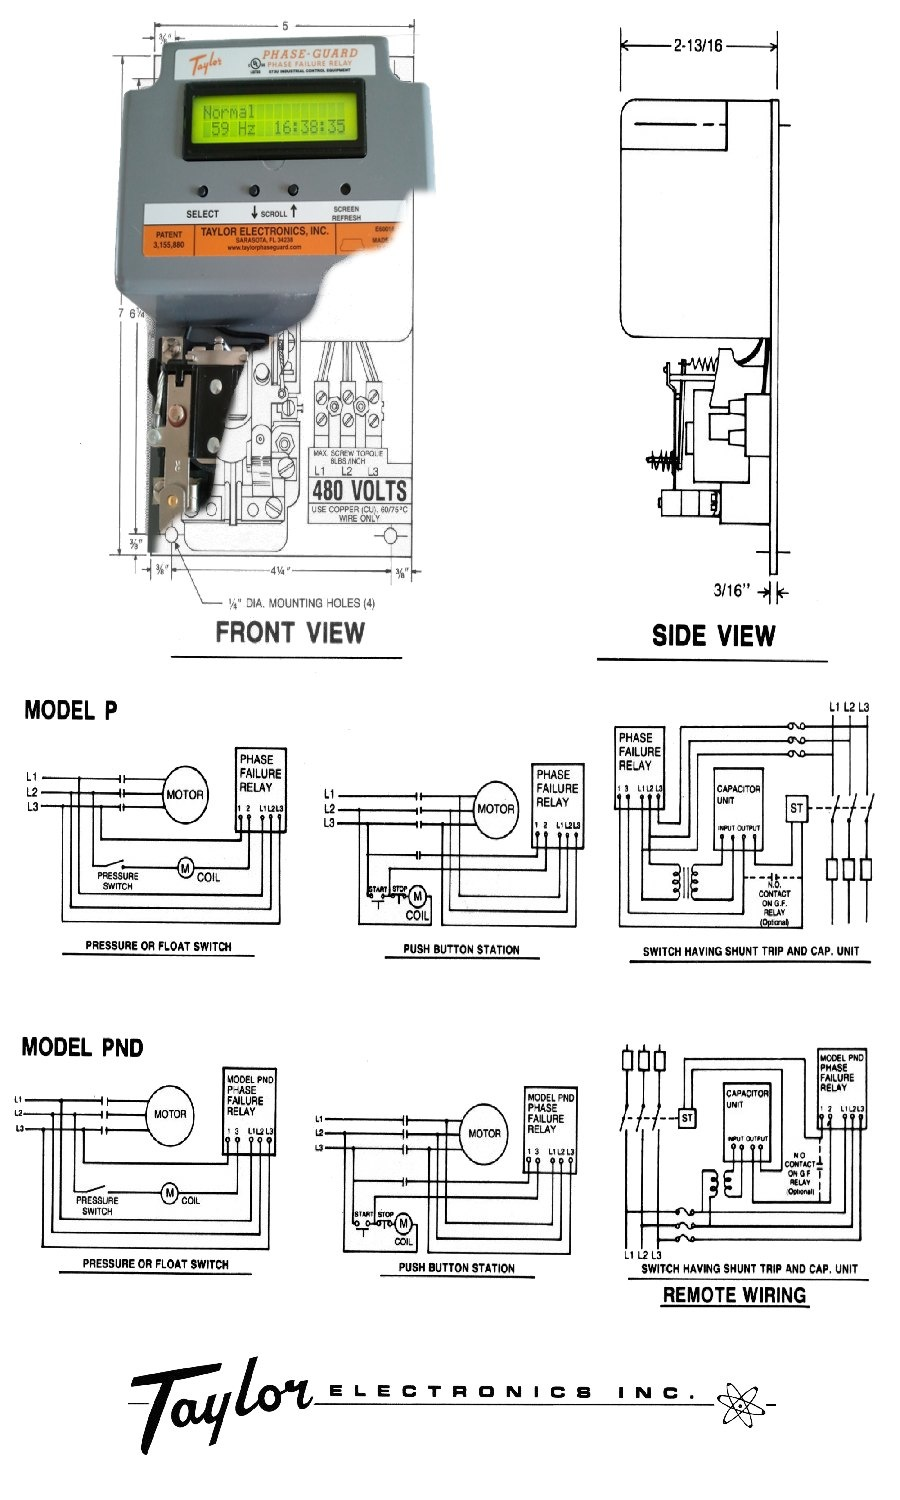 hight resolution of wiring diagram taylor electronics inc van dorn wiring diagram taylor wiring diagram